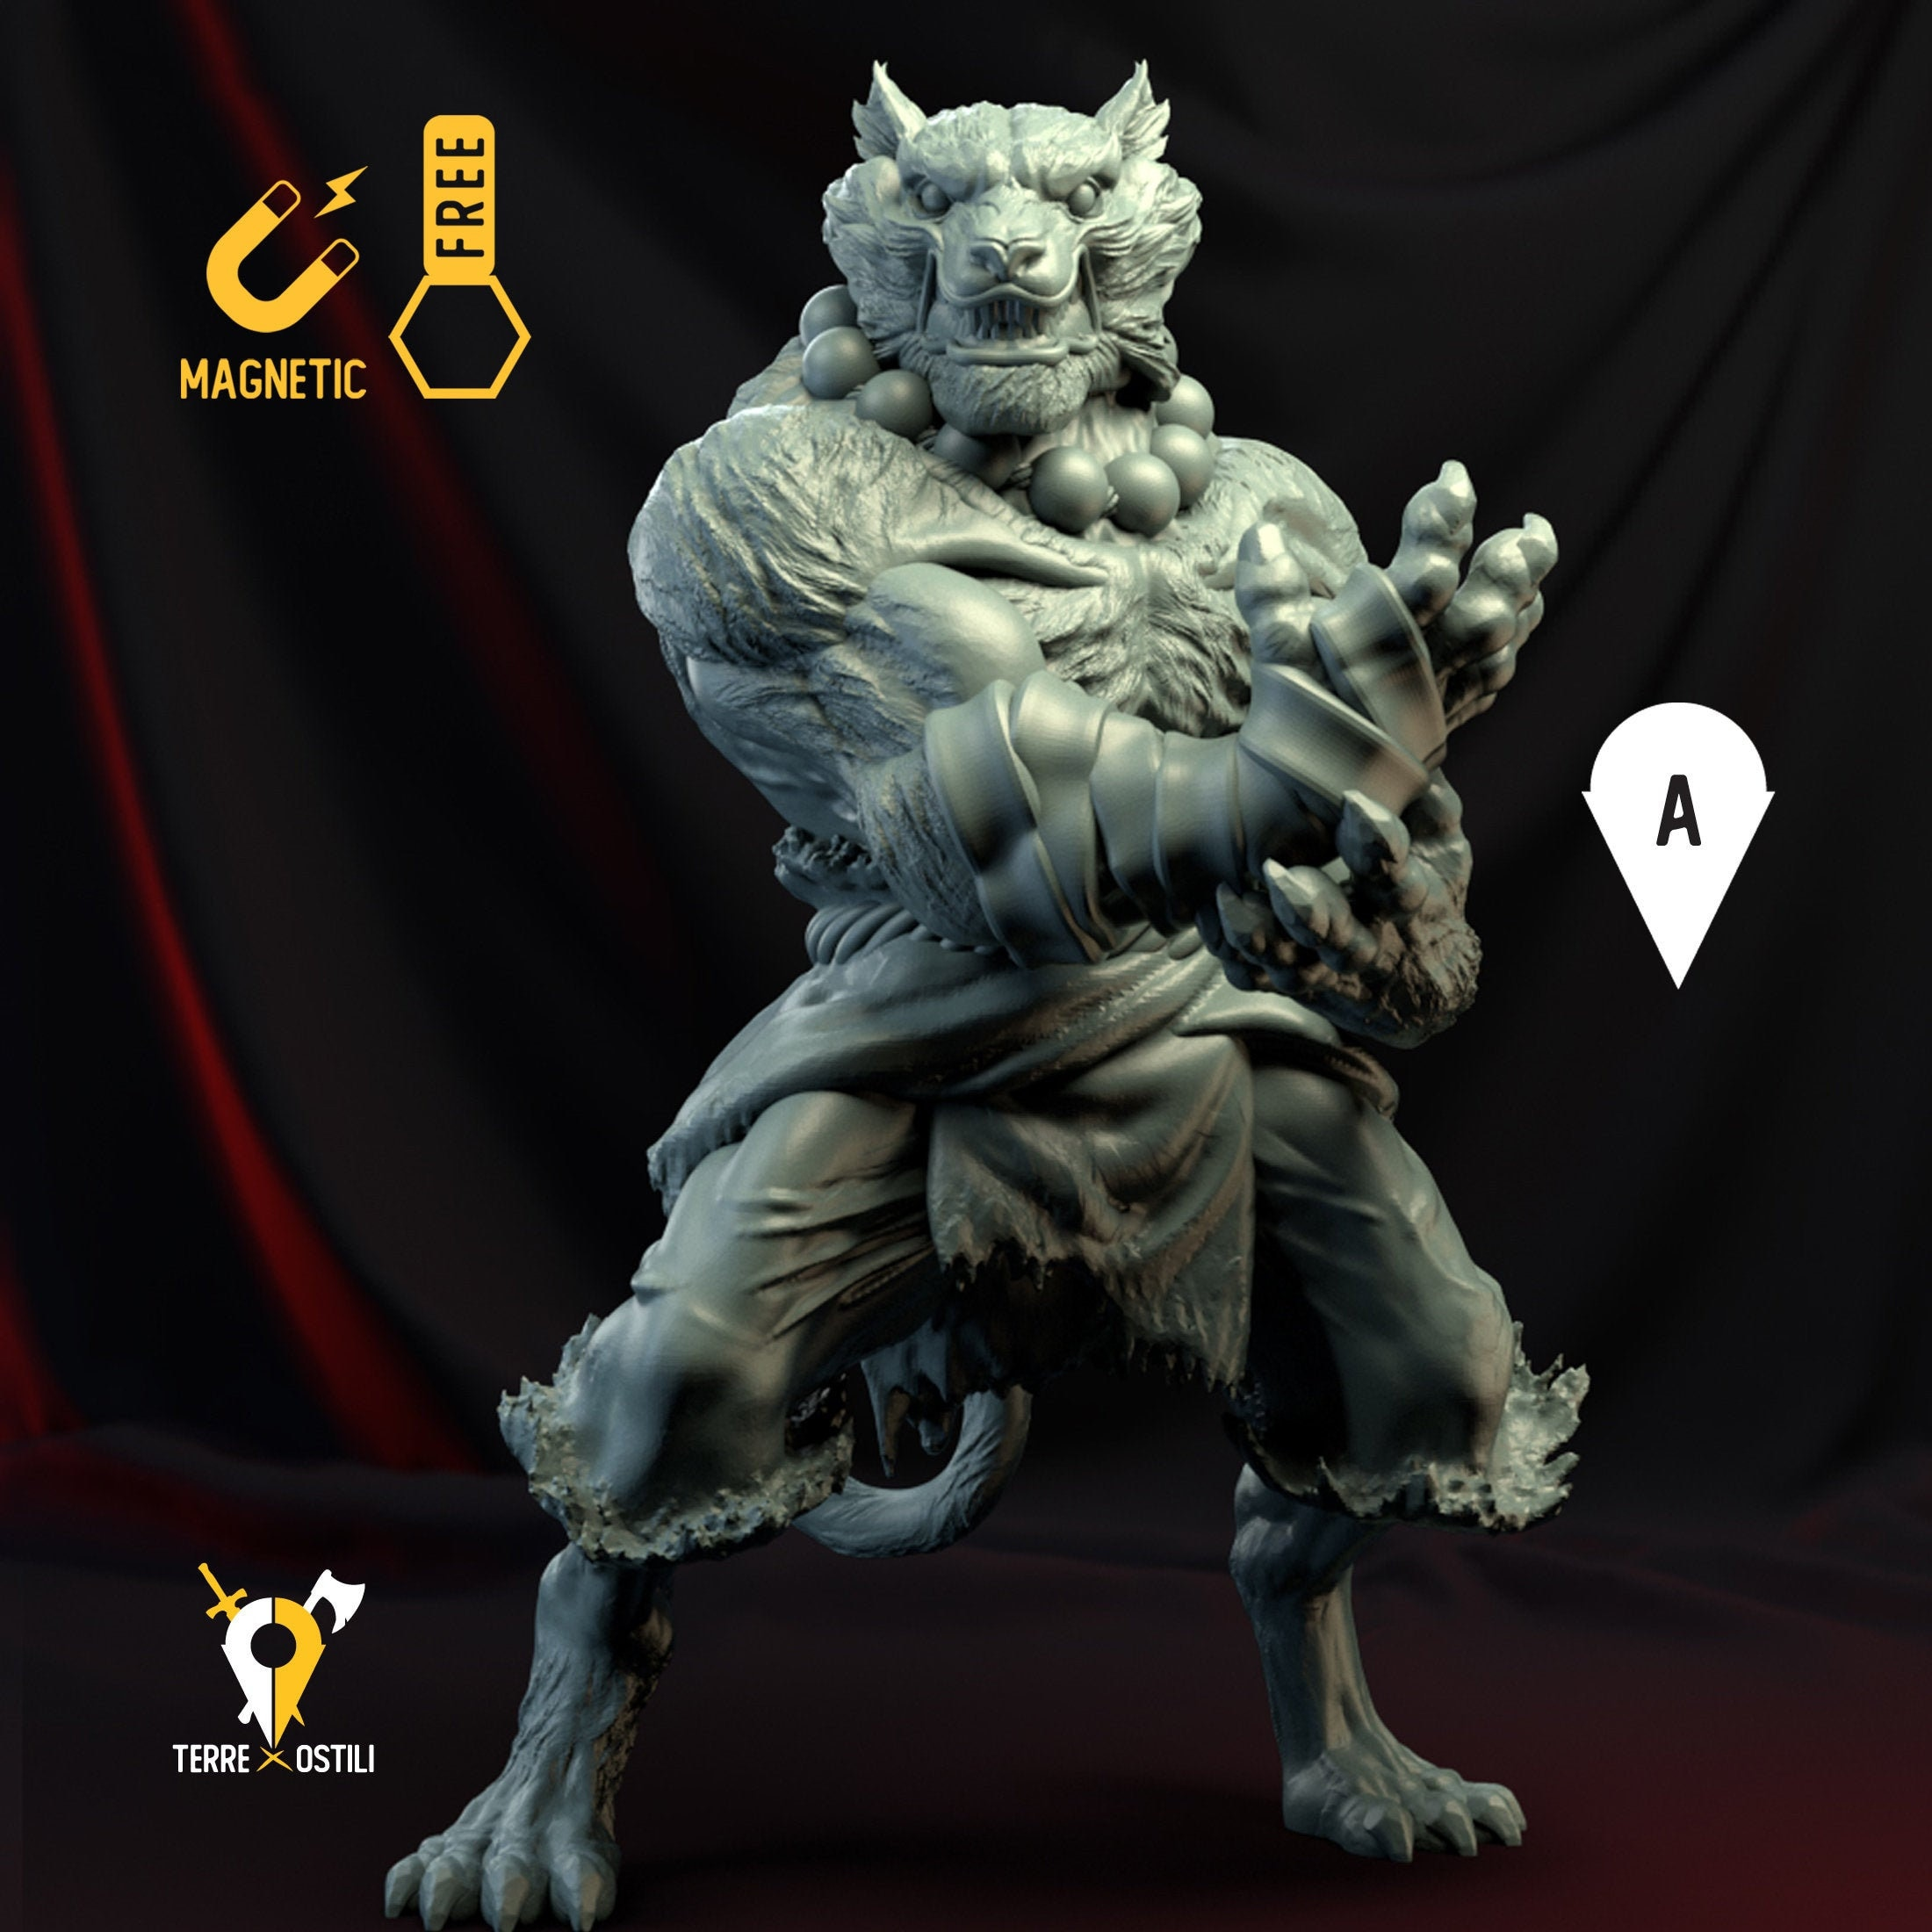 Tabaxi Monk Catfolk Miniature Dungeons And Dragons Dnd Age Of Sigmar W40k 9th Age Kow Mordheim Rpg Tabletop Miniature Tabaxi tend toward chaotic alignments, as they let impulse and fancy guide their decisions. tabaxi monk catfolk miniature dungeons